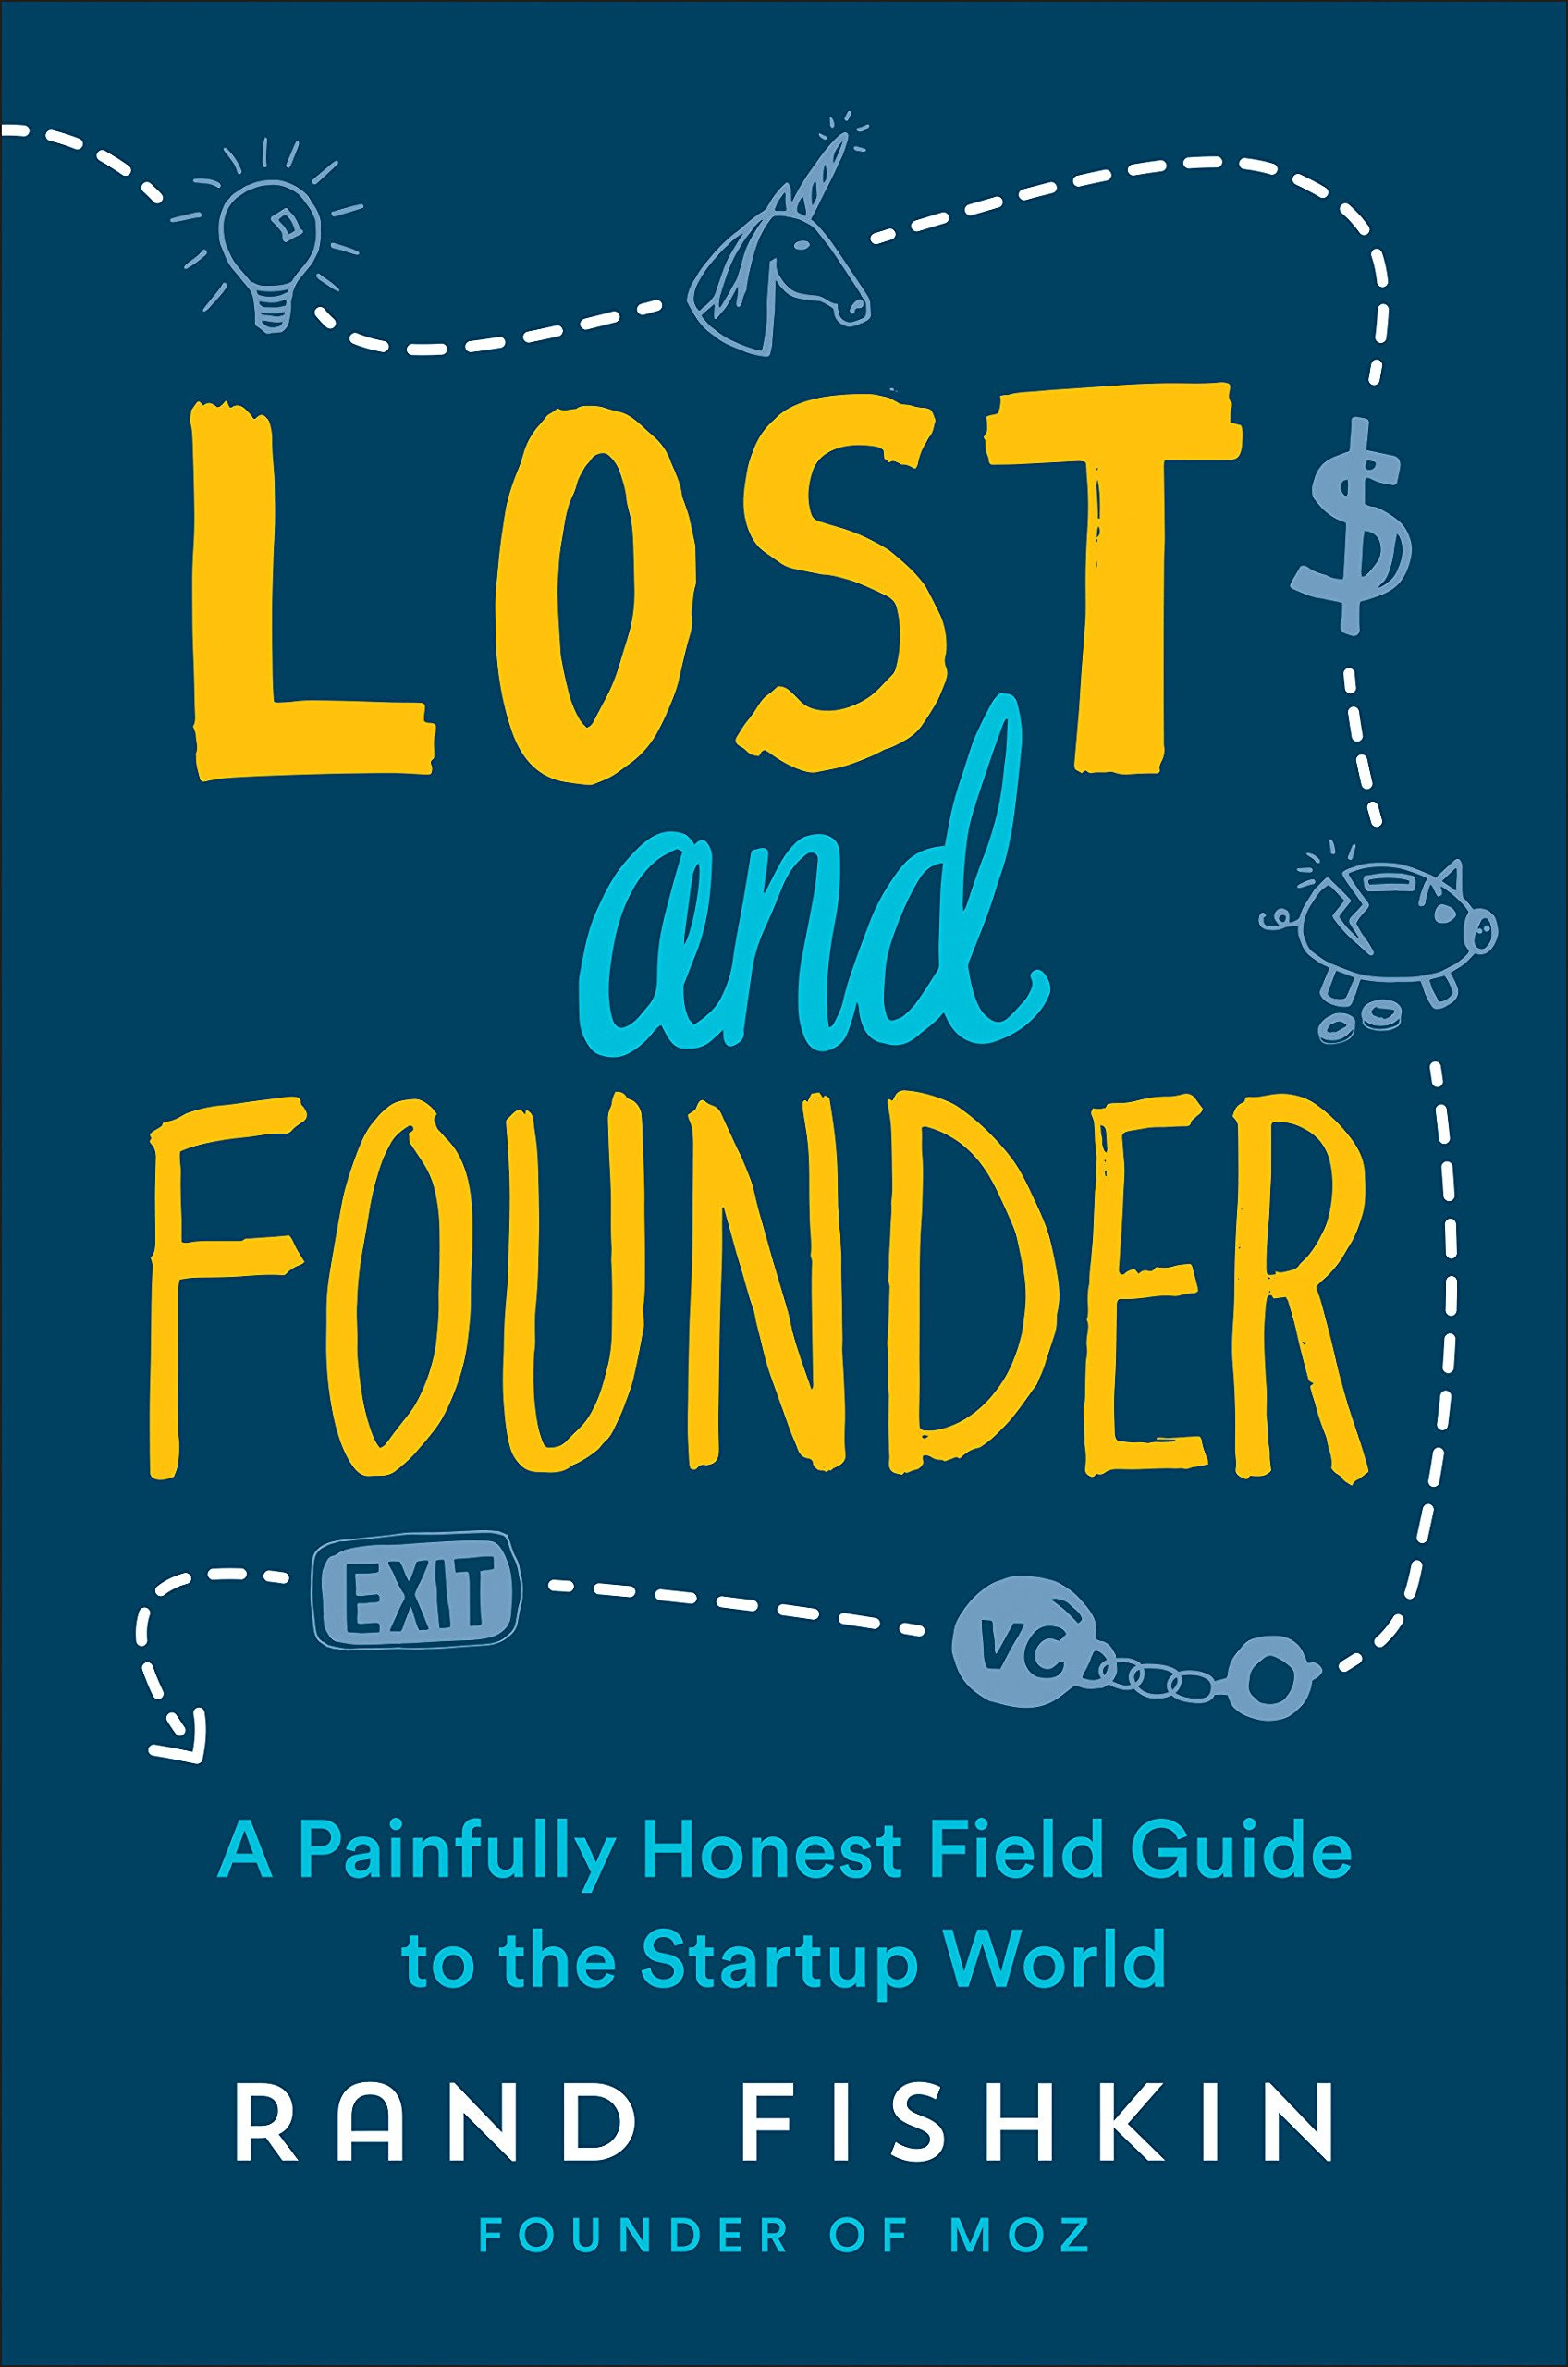 Book cover for Lost and Founder: A Painfully Honest Field Guide to the Startup World